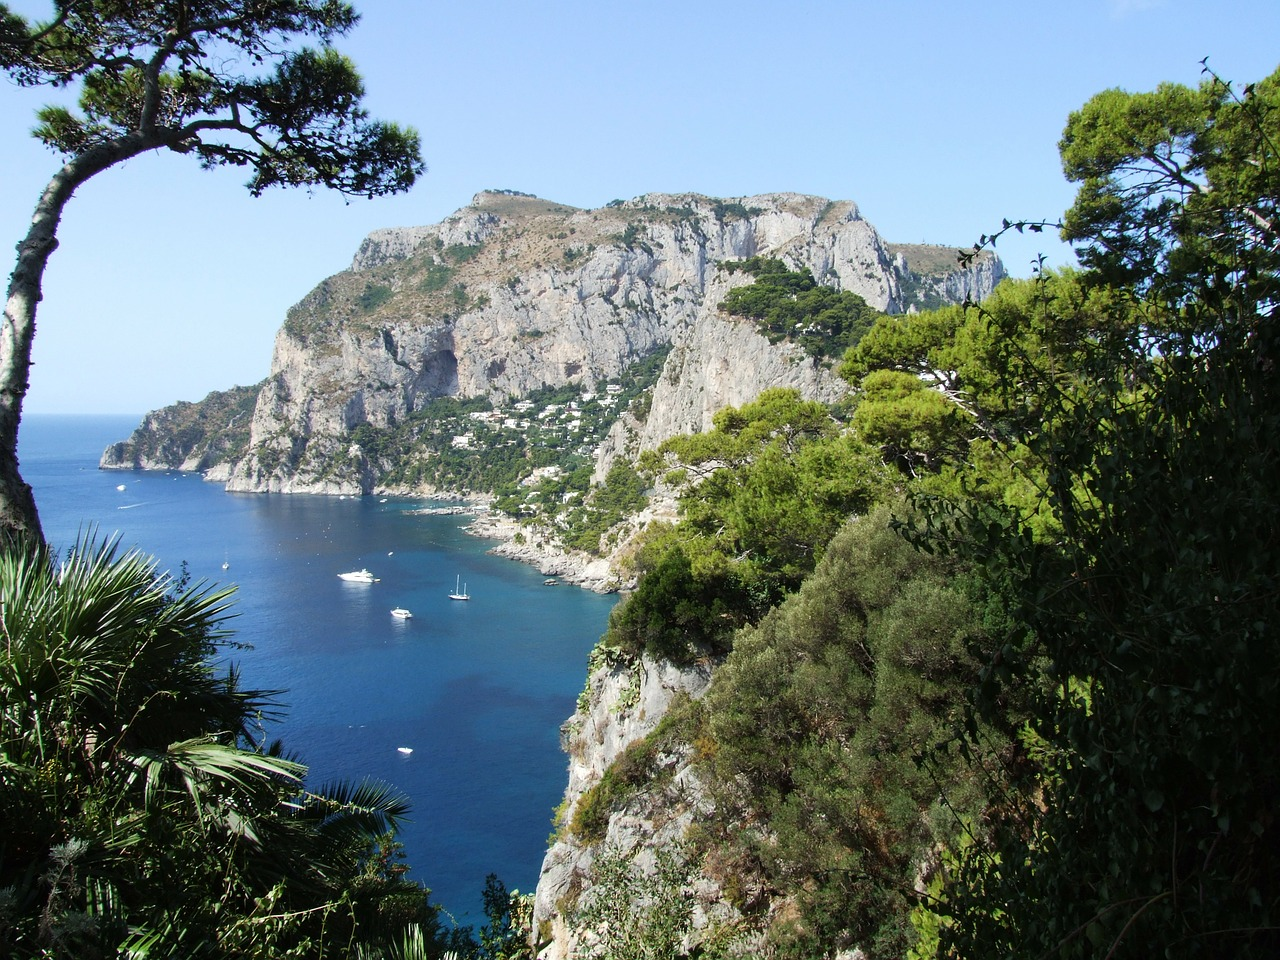 Cruising The Amalfi Coast Is A Vacation In Southern Italy Best Experienced By Yacht